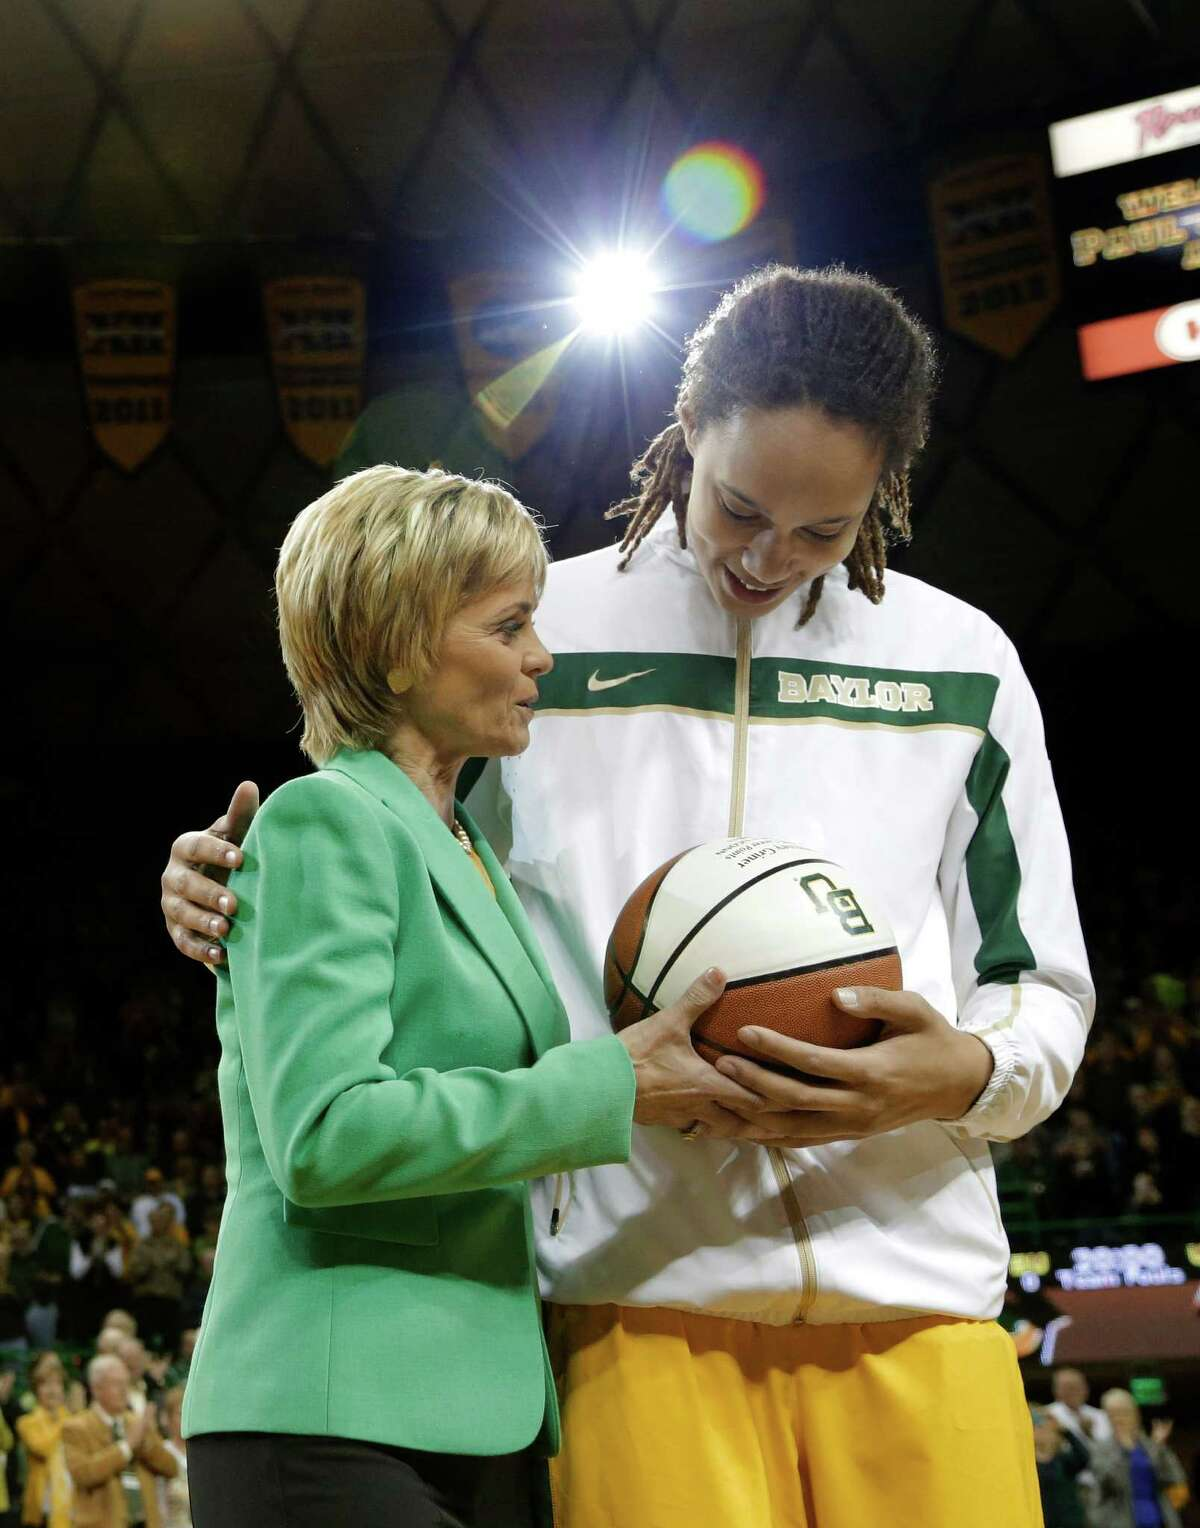 Baylor head coach Kim Mulkey left, hands Brittney Griner, right, a trophy basketball during a pregame ceremony before an NCAA college basketball game against Texas Saturday, Feb. 23, 2013, in Waco, Texas. Griner was honored before the game for becoming the eighth Division I woman with 3,000 career points in Monday's win at No. 3 Connecticut. She moved up to No. 5 on the career list, passing Cindy Blodgett (Maine), Cheryl Miller (Southern California) and Chamique Holdsclaw (Tennessee). She's six points behind UConn's Maya Moore. Baylor defeated Texas 67-47. (AP Photo/Tony Gutierrez)